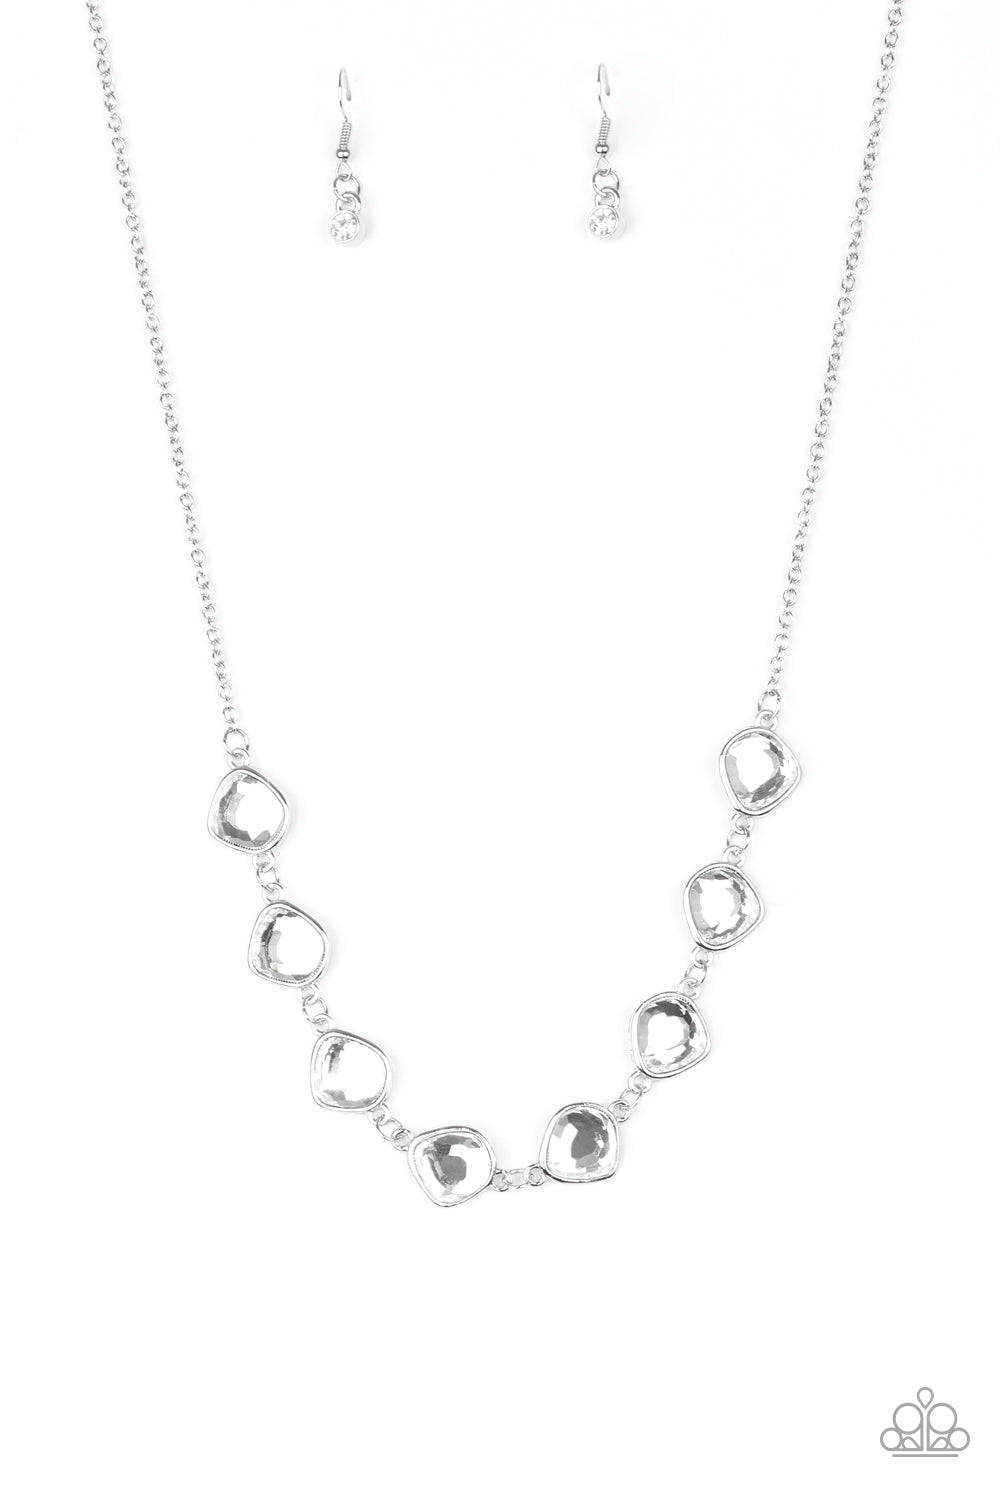 The Imperfectionist - Silver Necklace